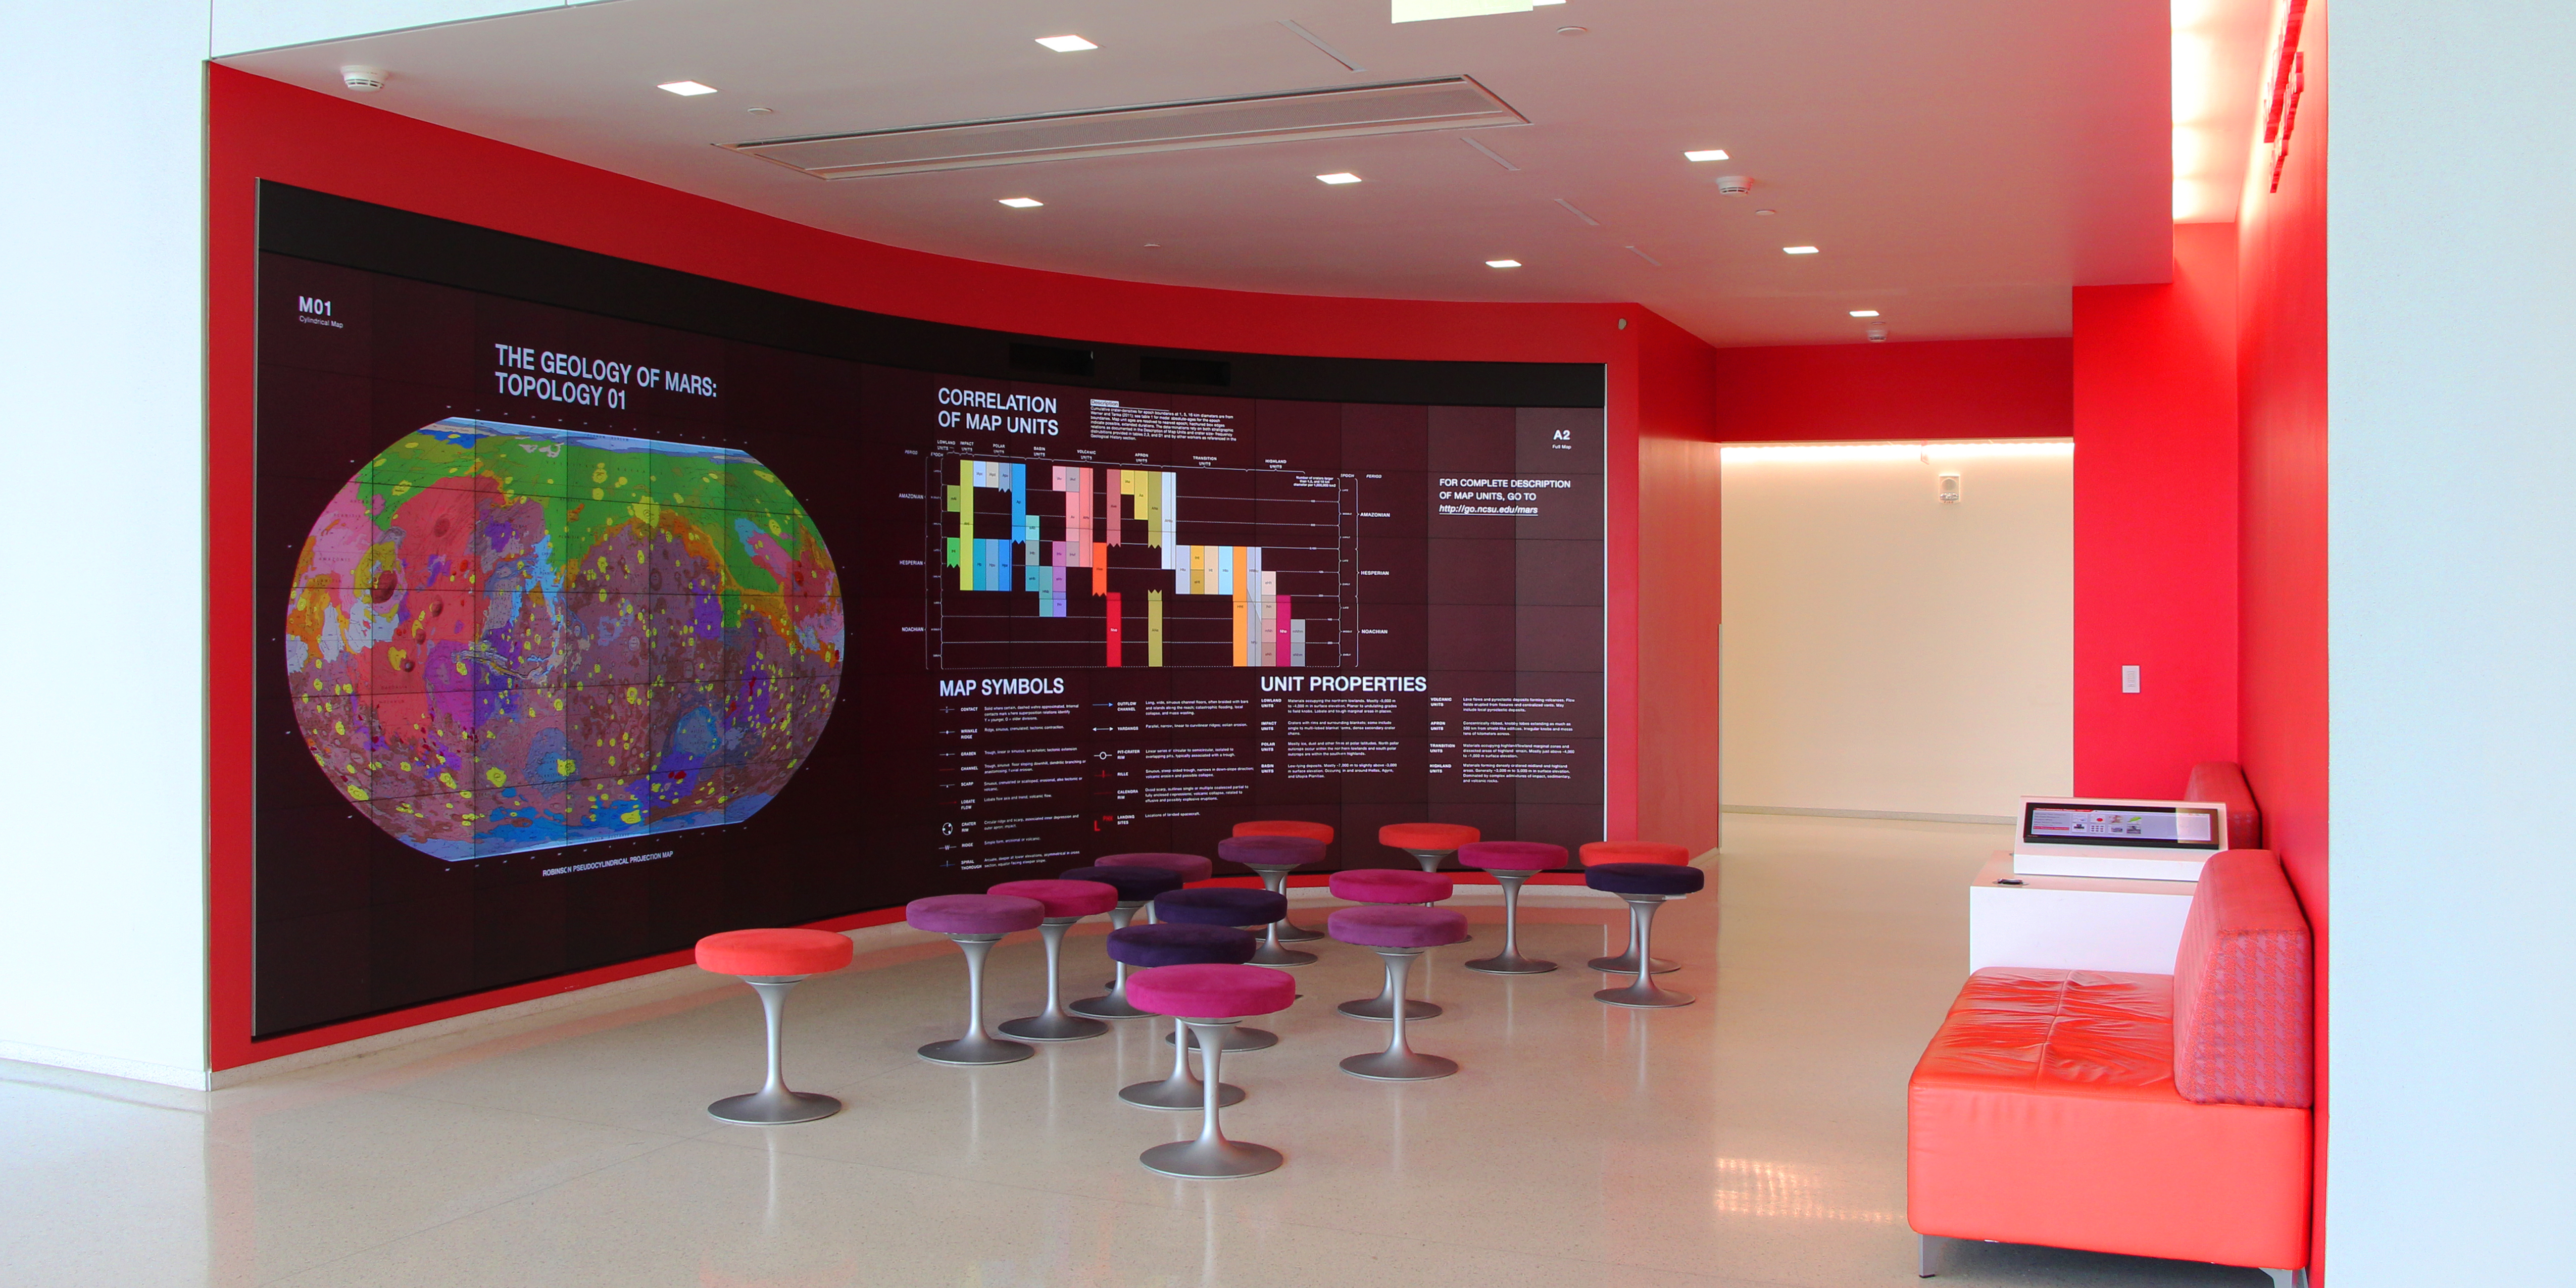 iPearl Immersion Theater with global geologic map of Mars